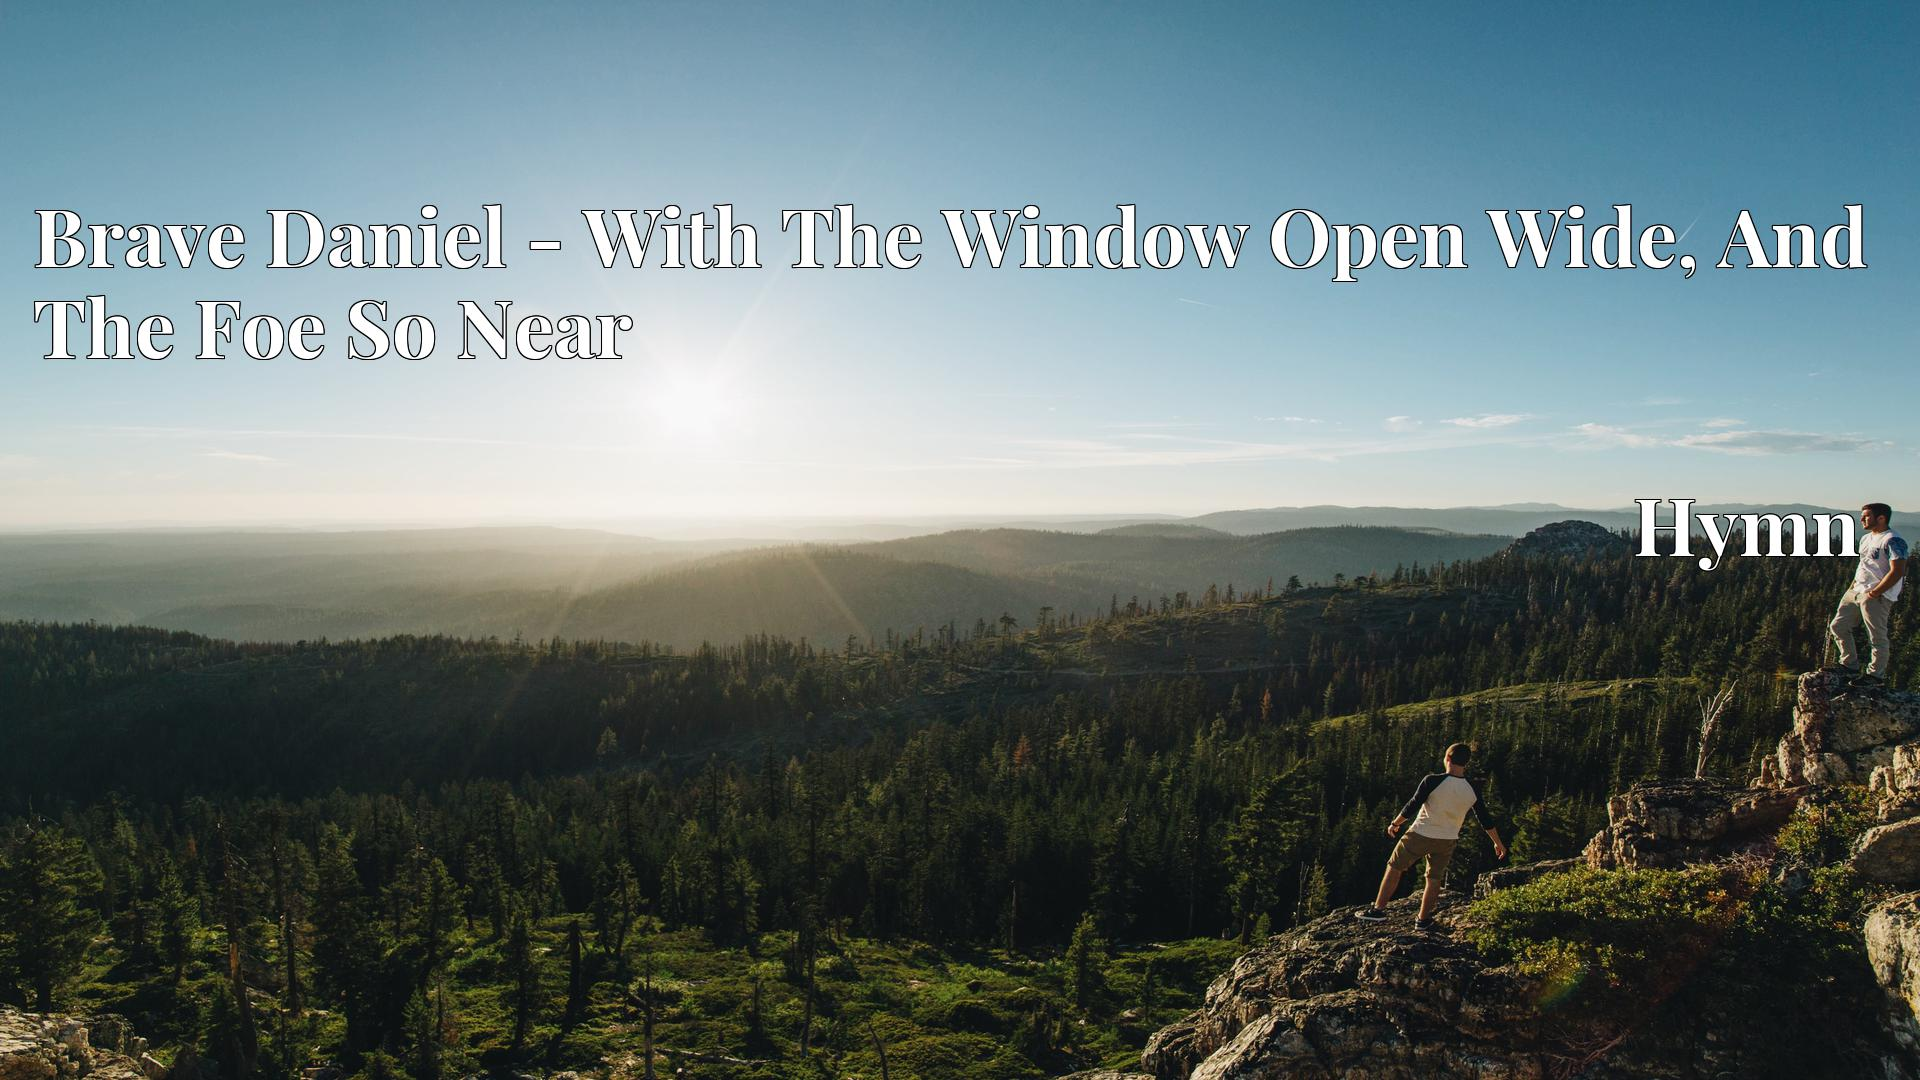 Brave Daniel - With The Window Open Wide, And The Foe So Near Hymn